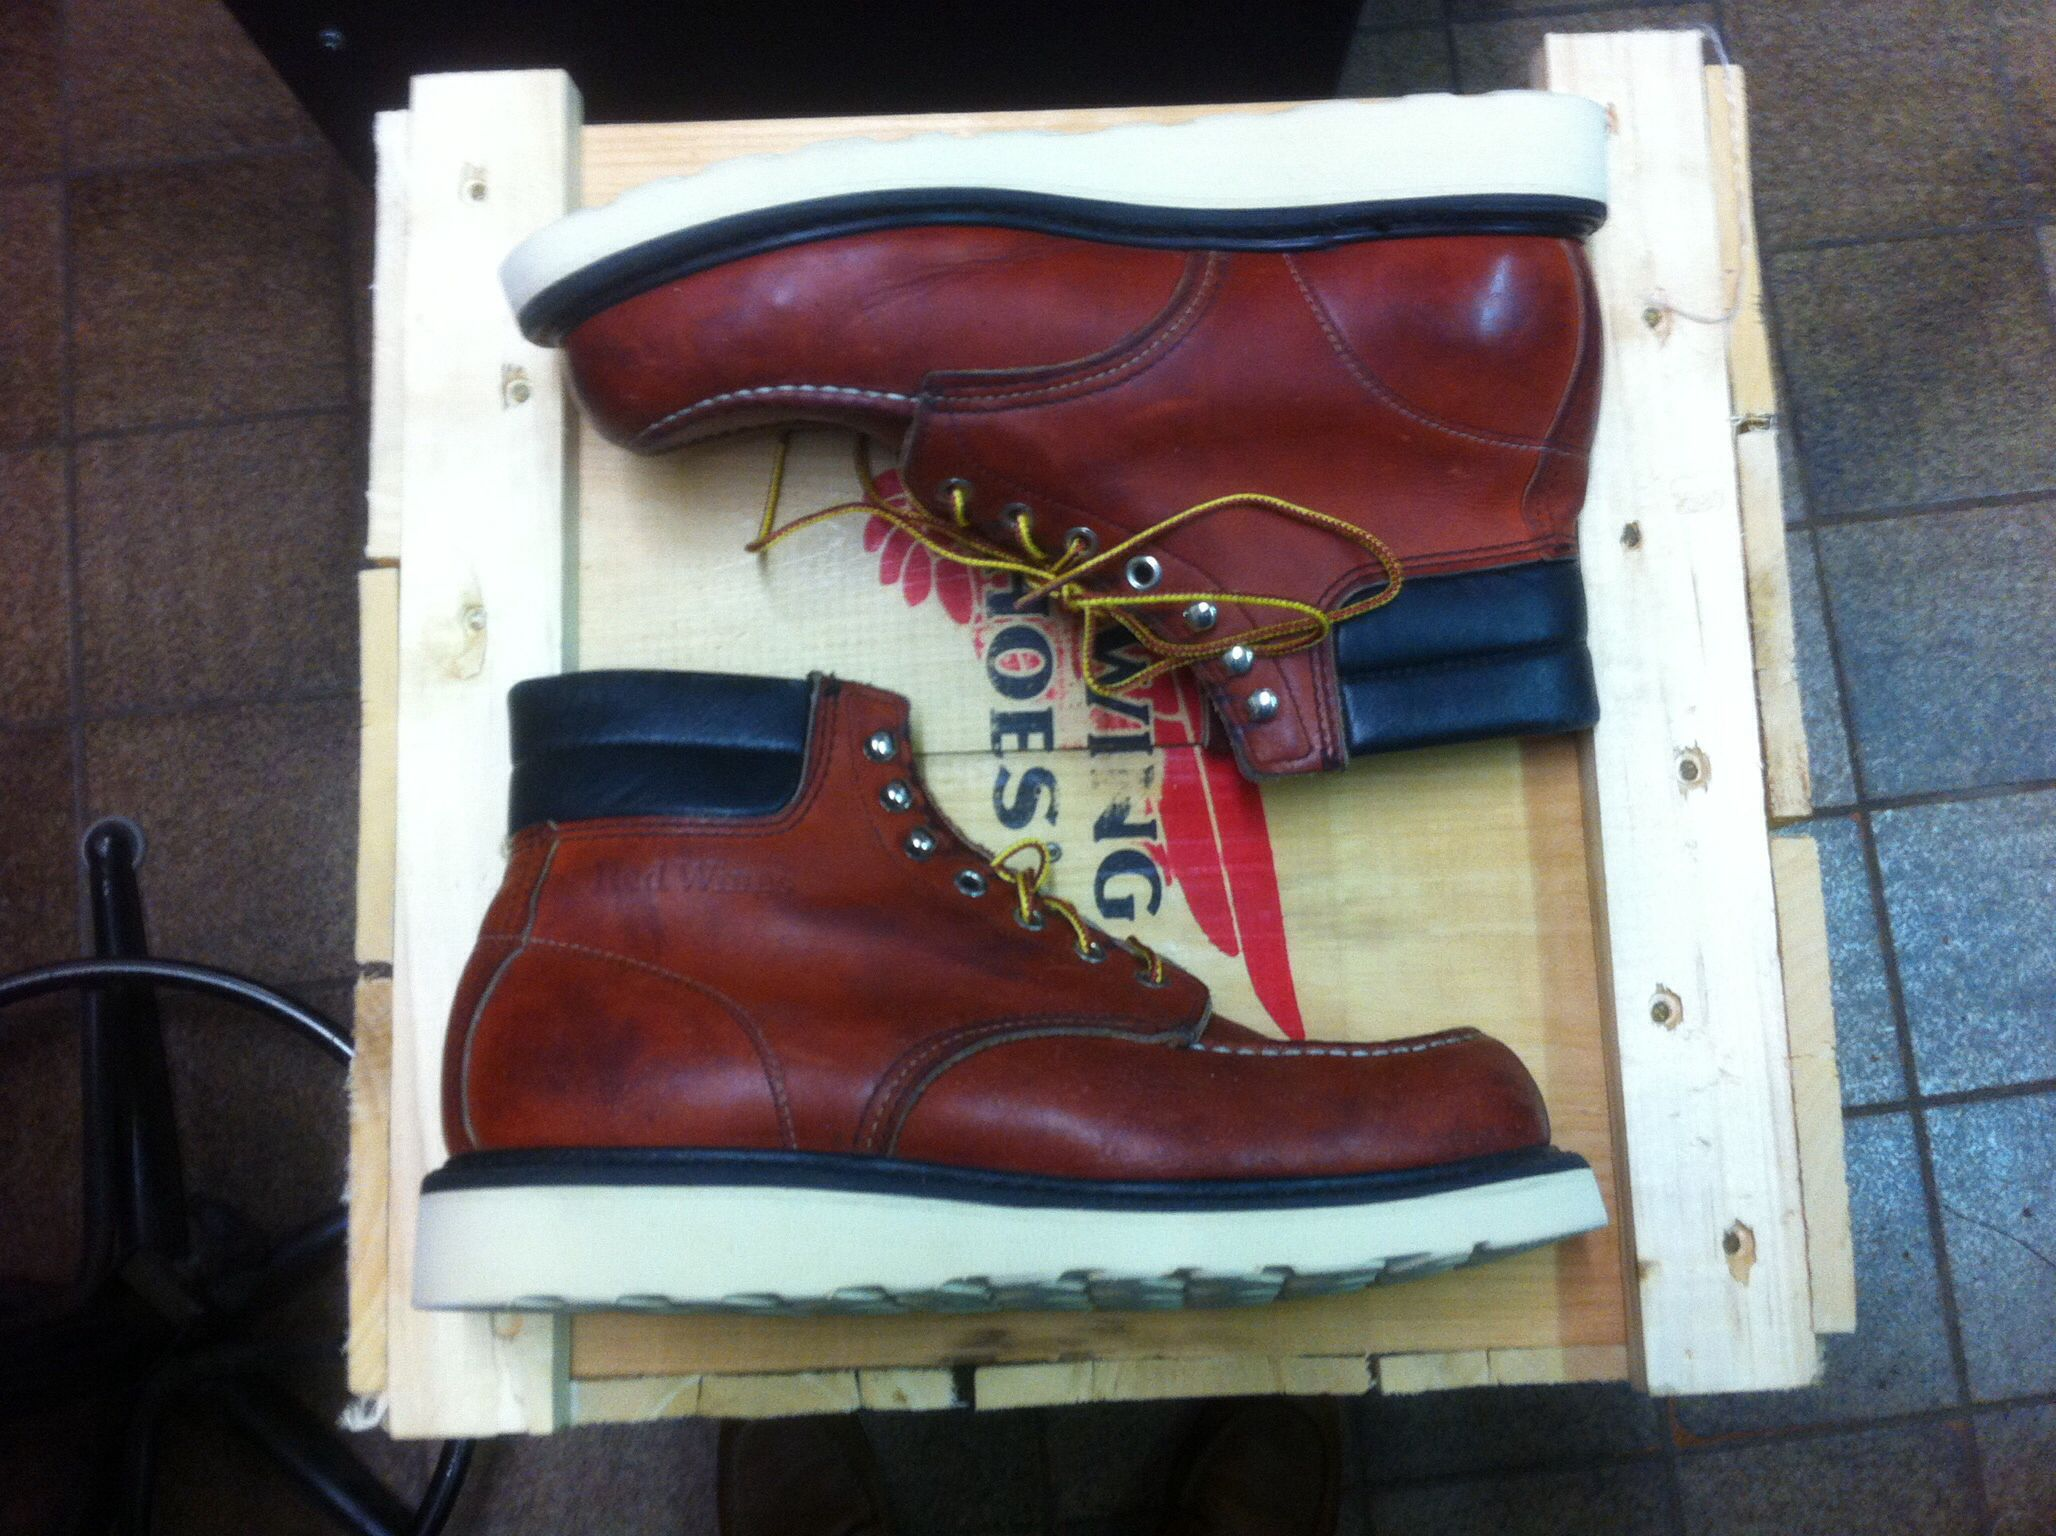 The iconic Red Wing 8804 Boot